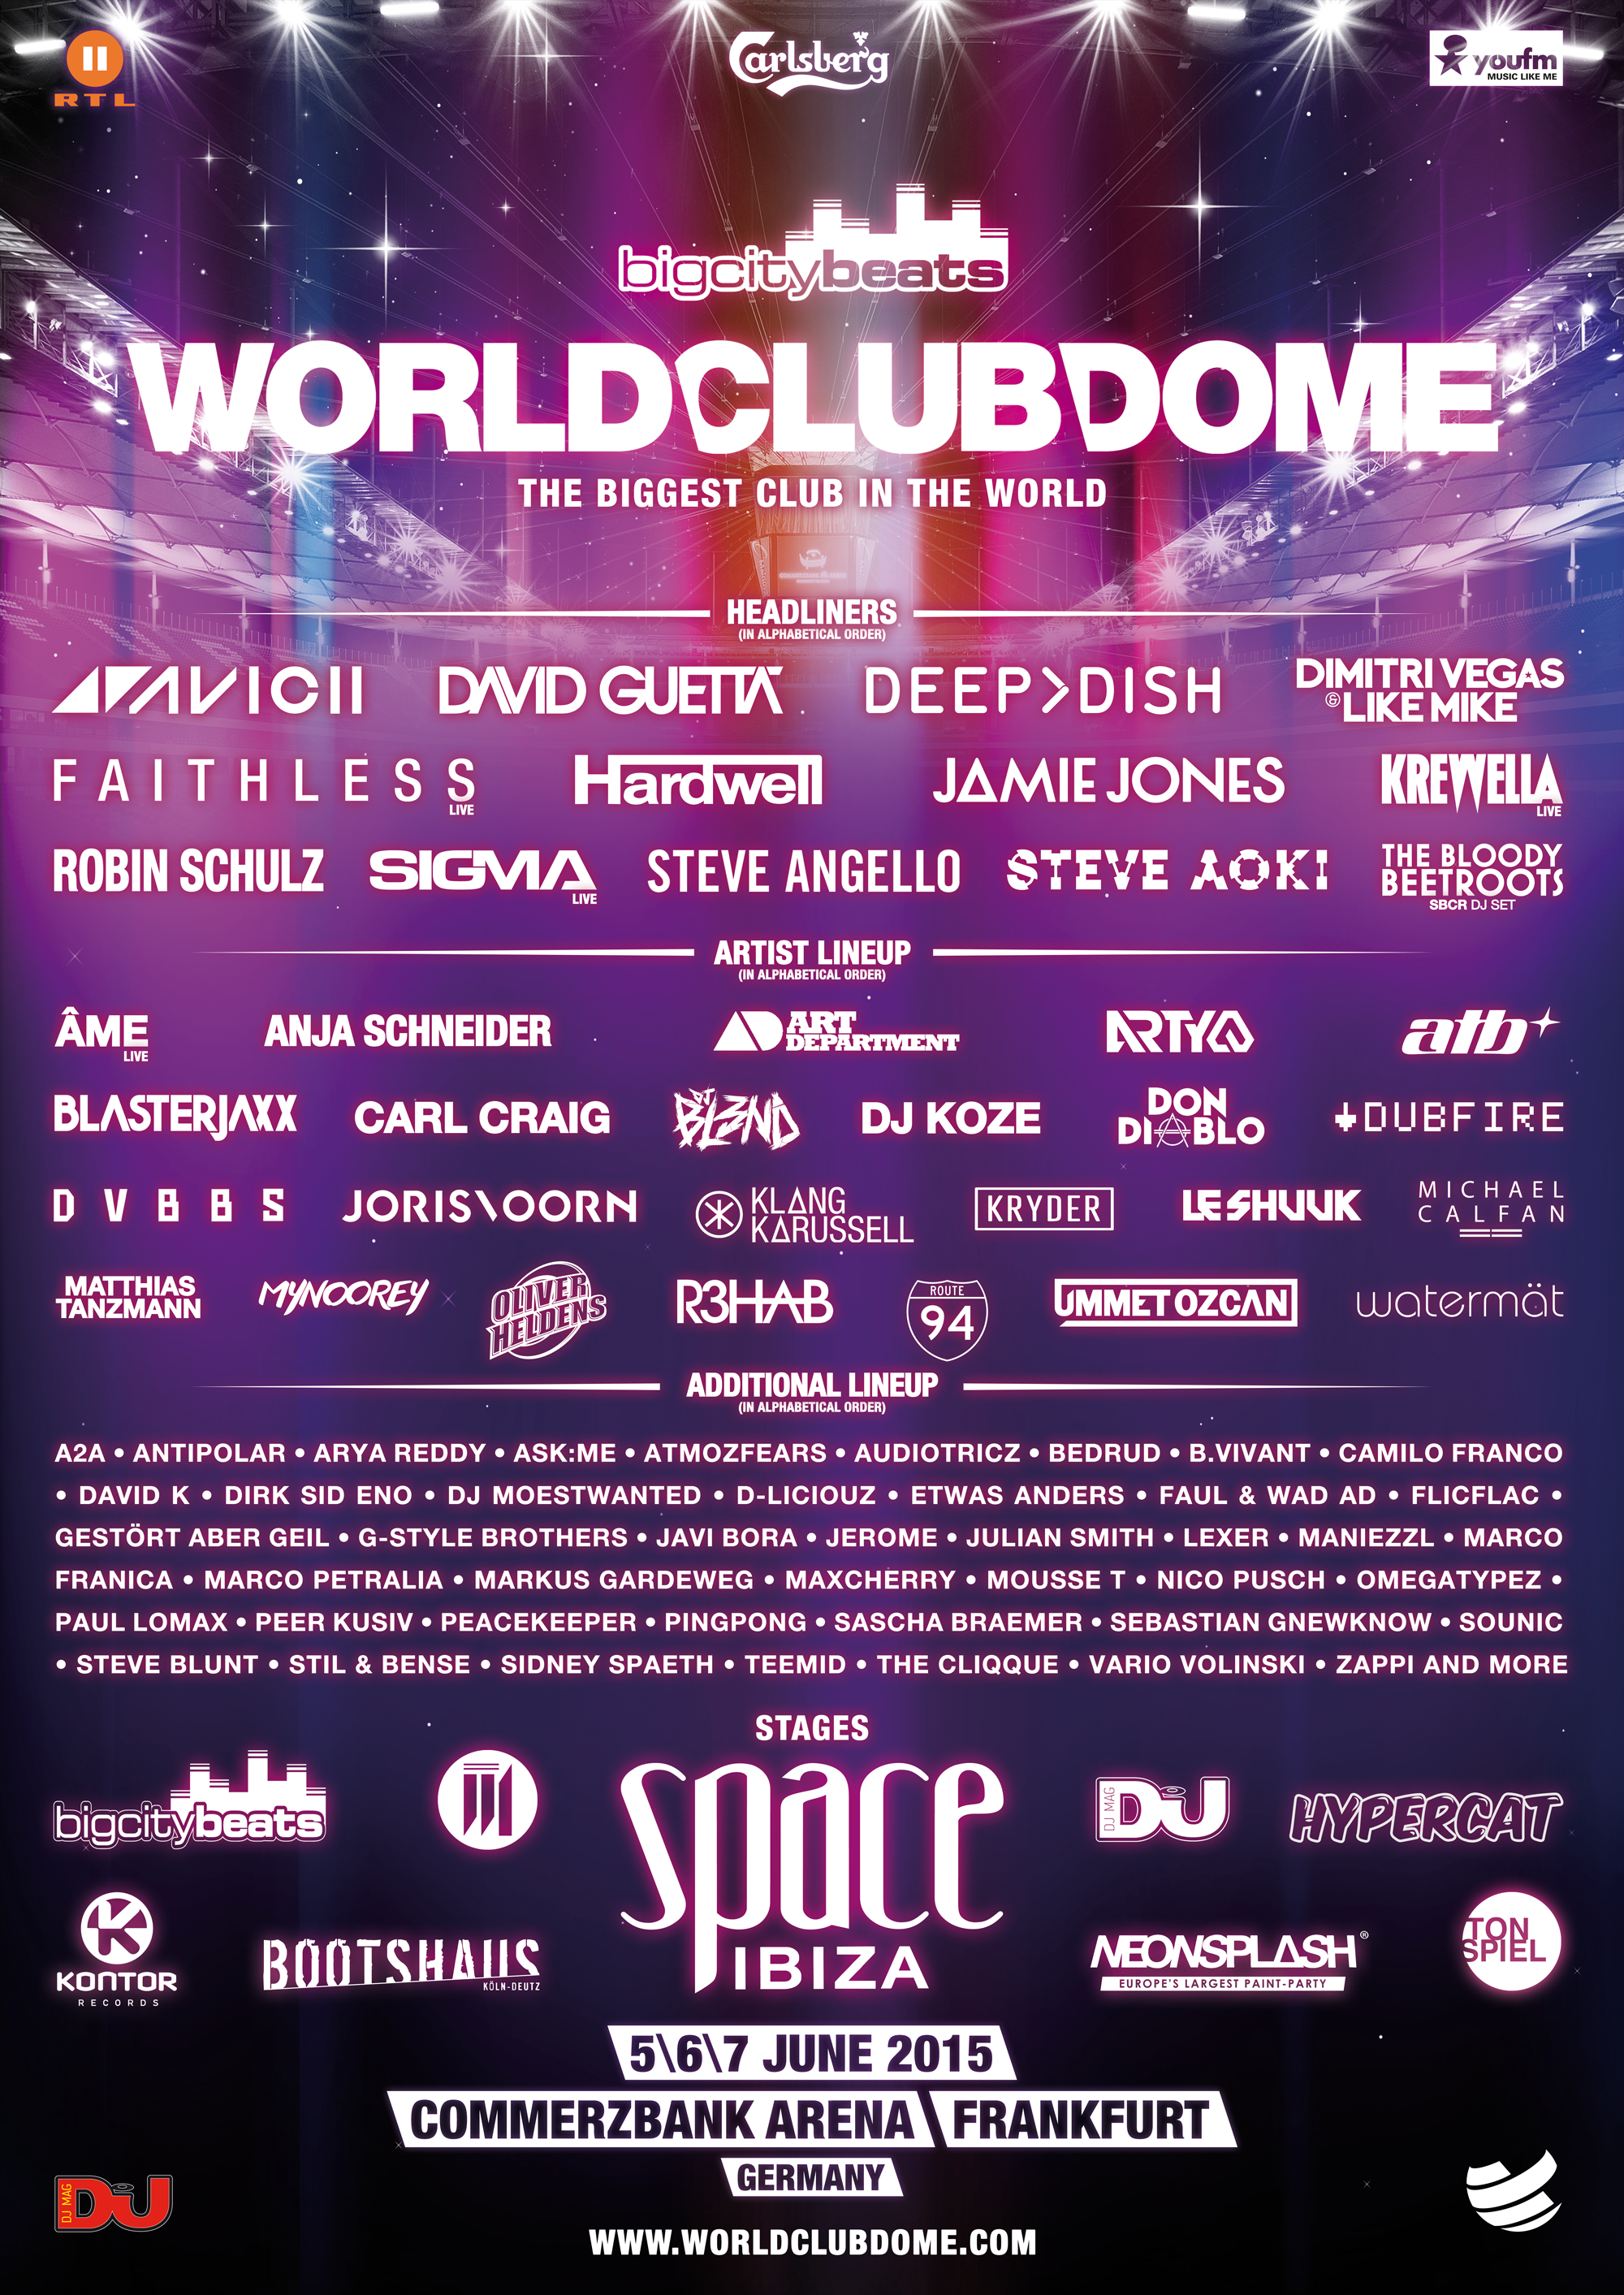 World Club Dome 2015 mit großartigem LineUp